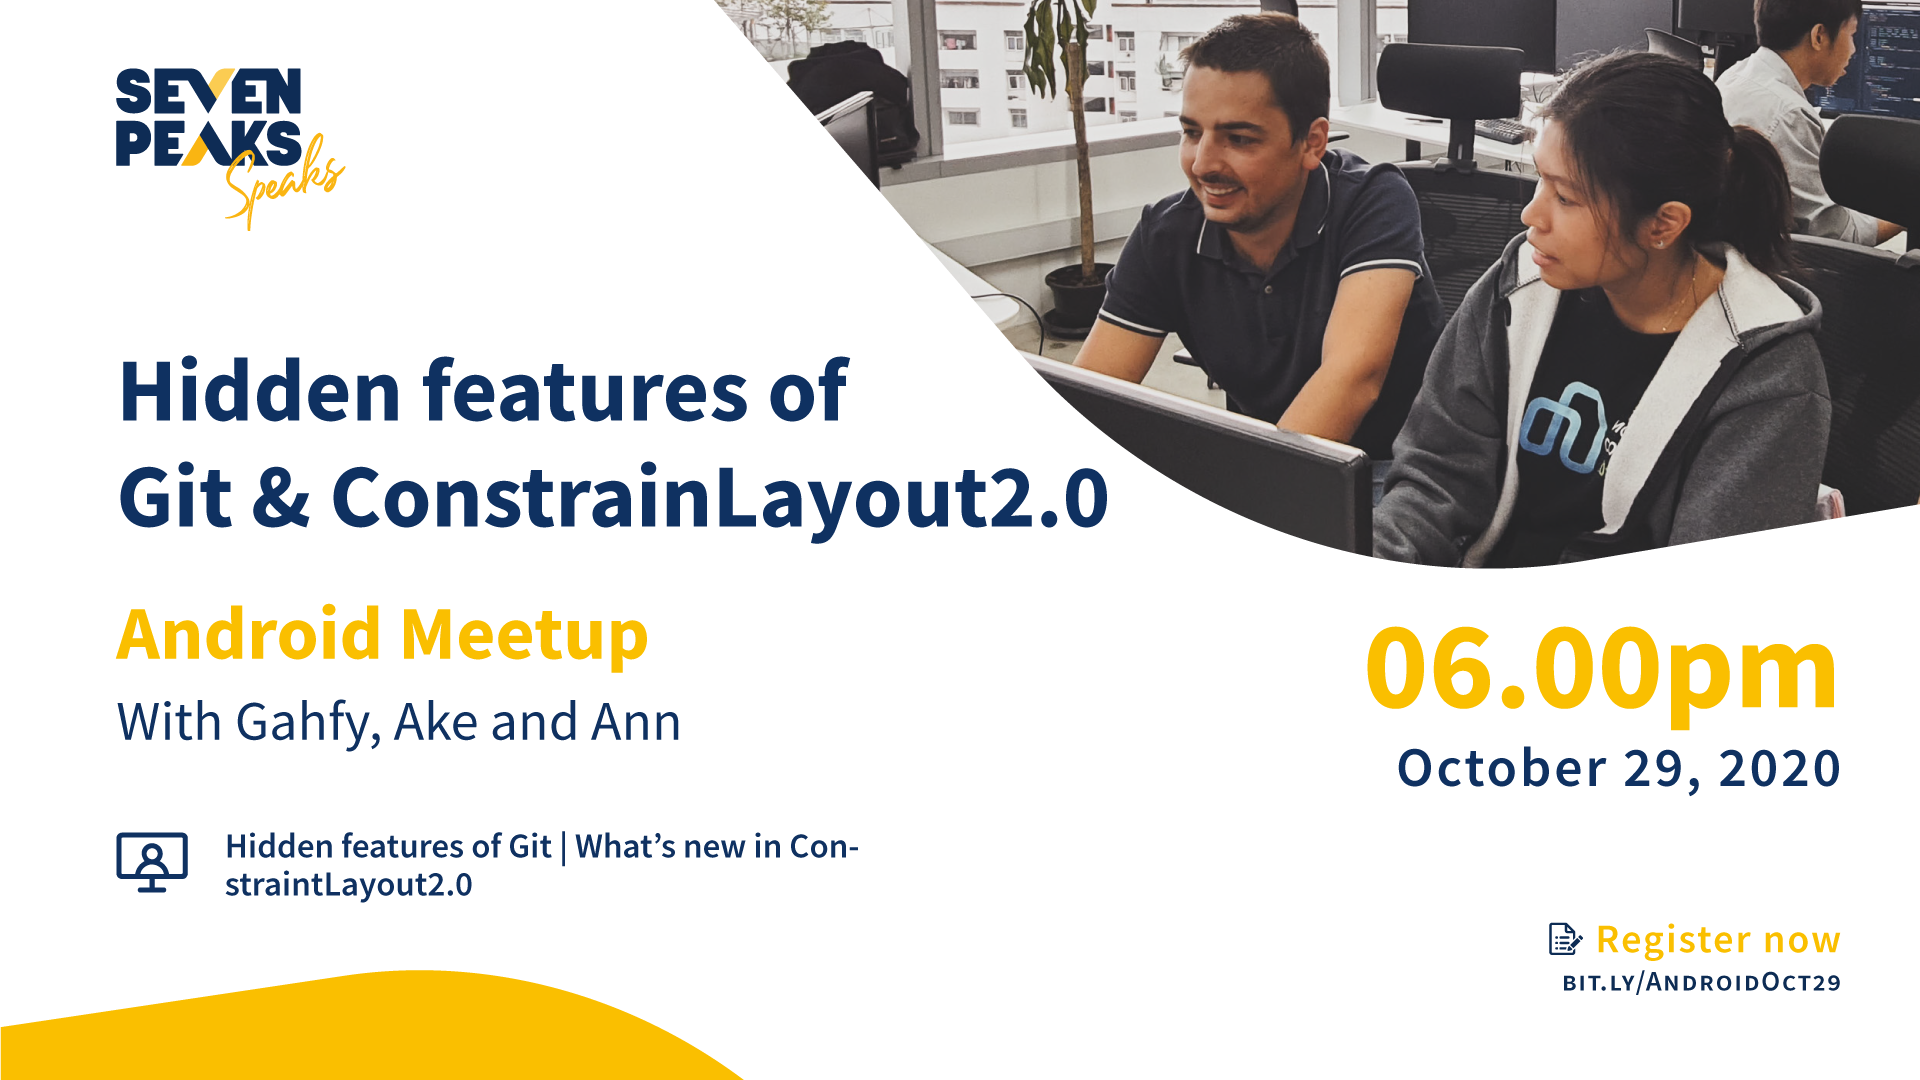 The hidden features of Git and ConstraintLayout 2.0